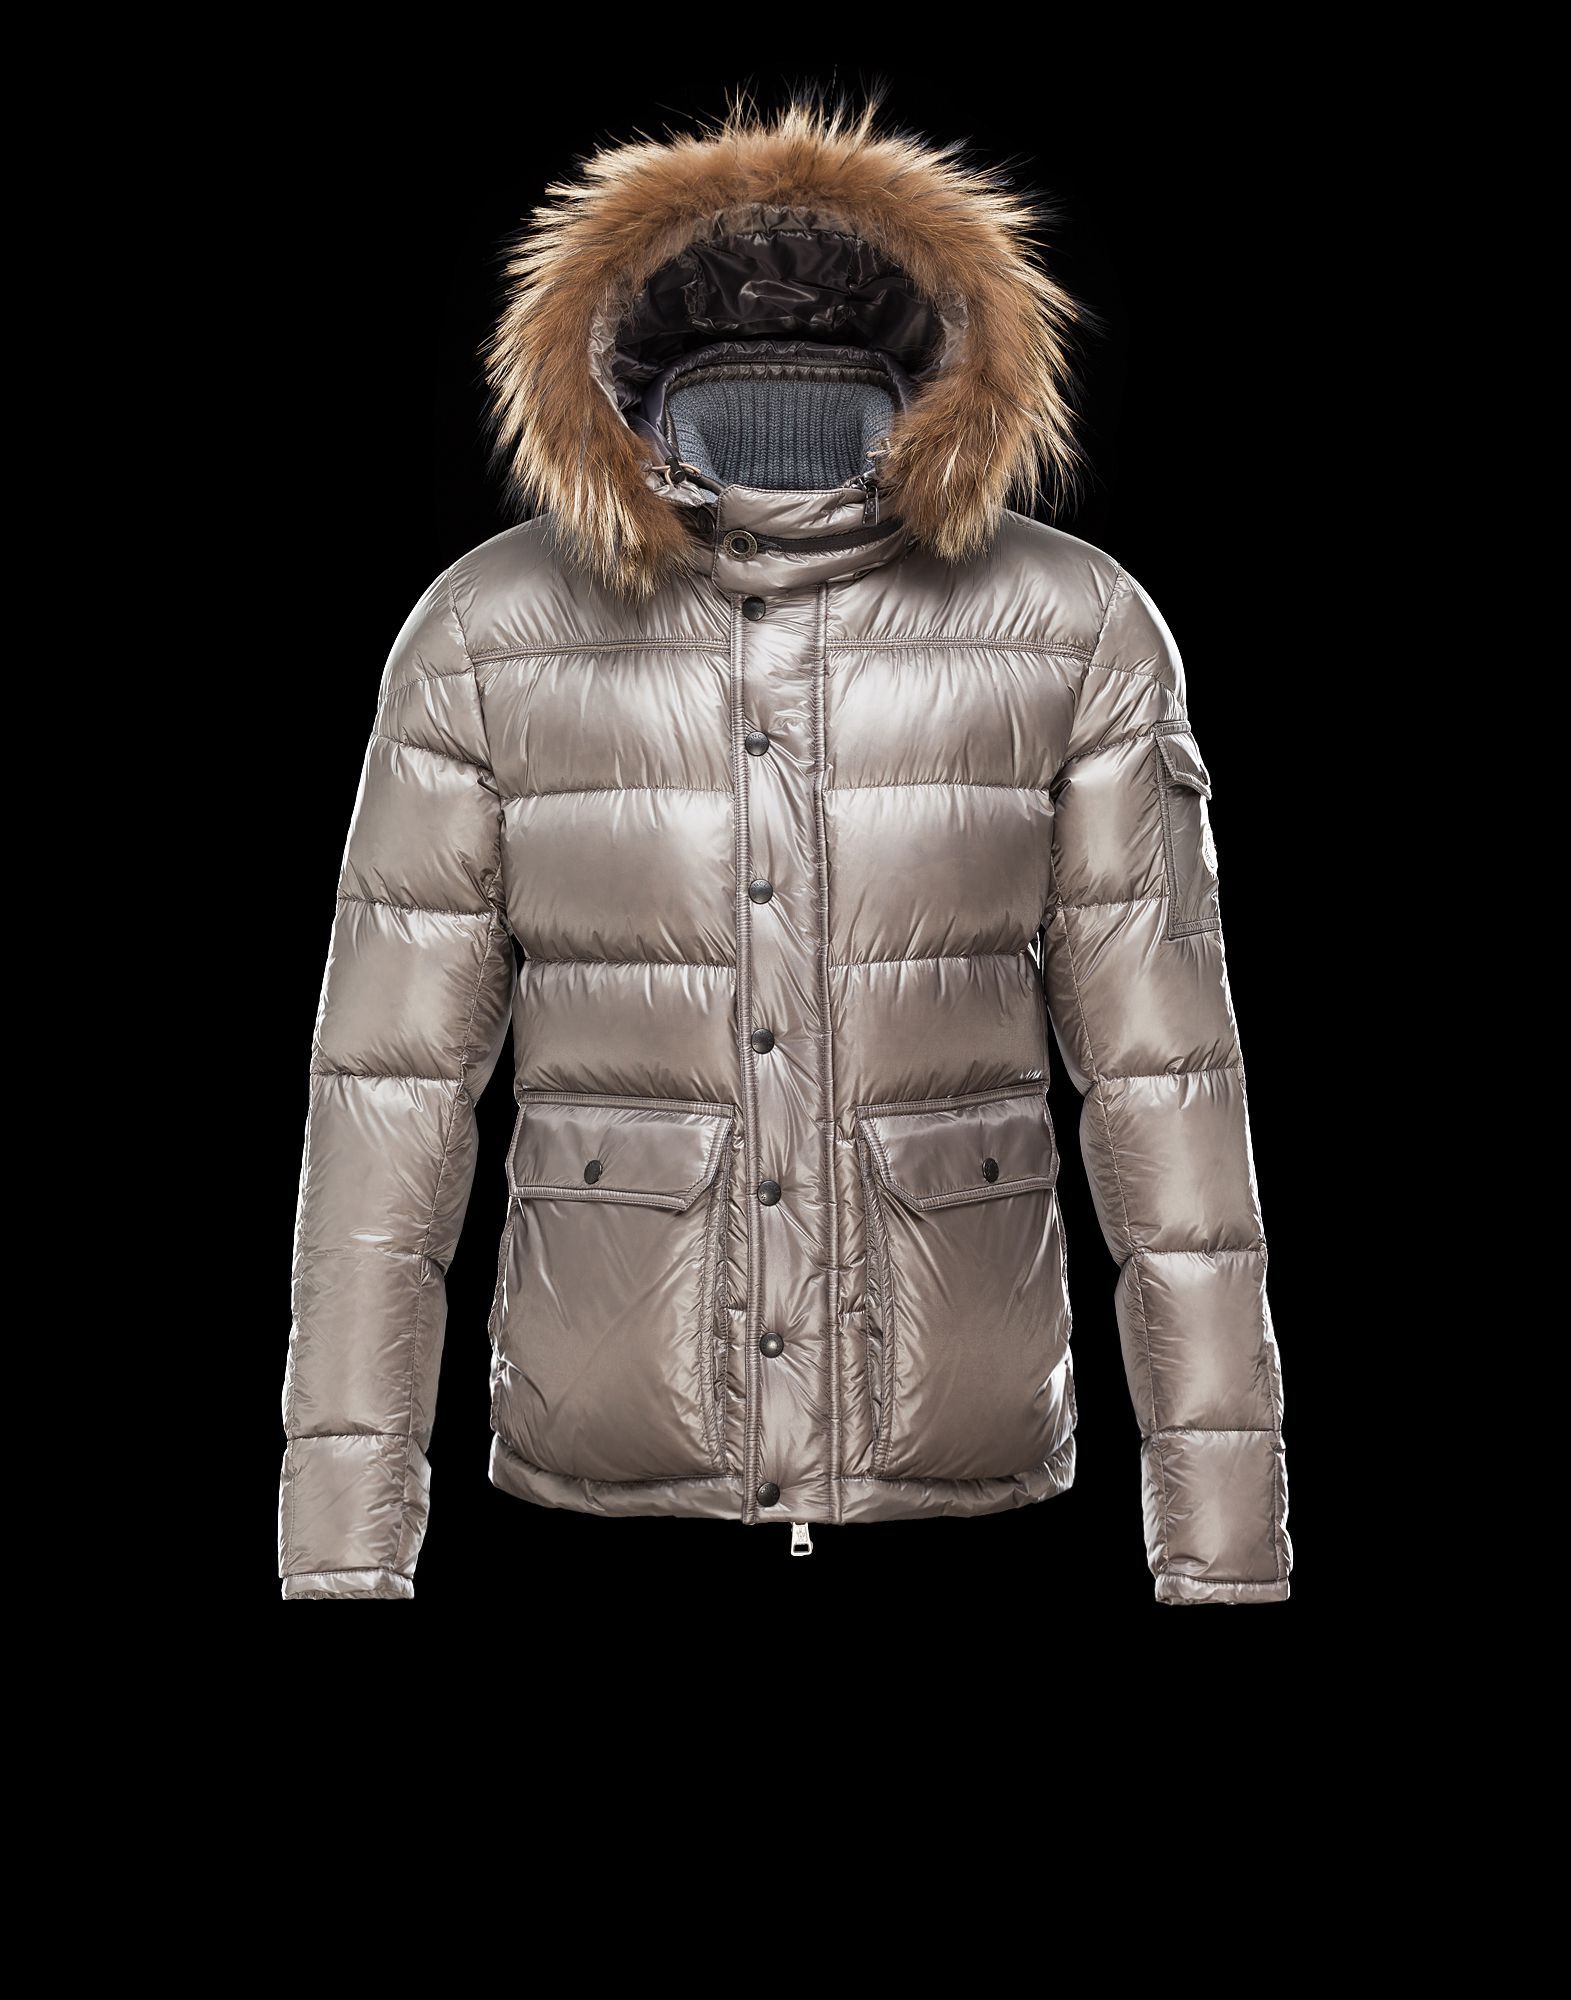 Cheap Moncler Hubert Men Coats Grey With Fur Collar Removable Cap Sale NA1122